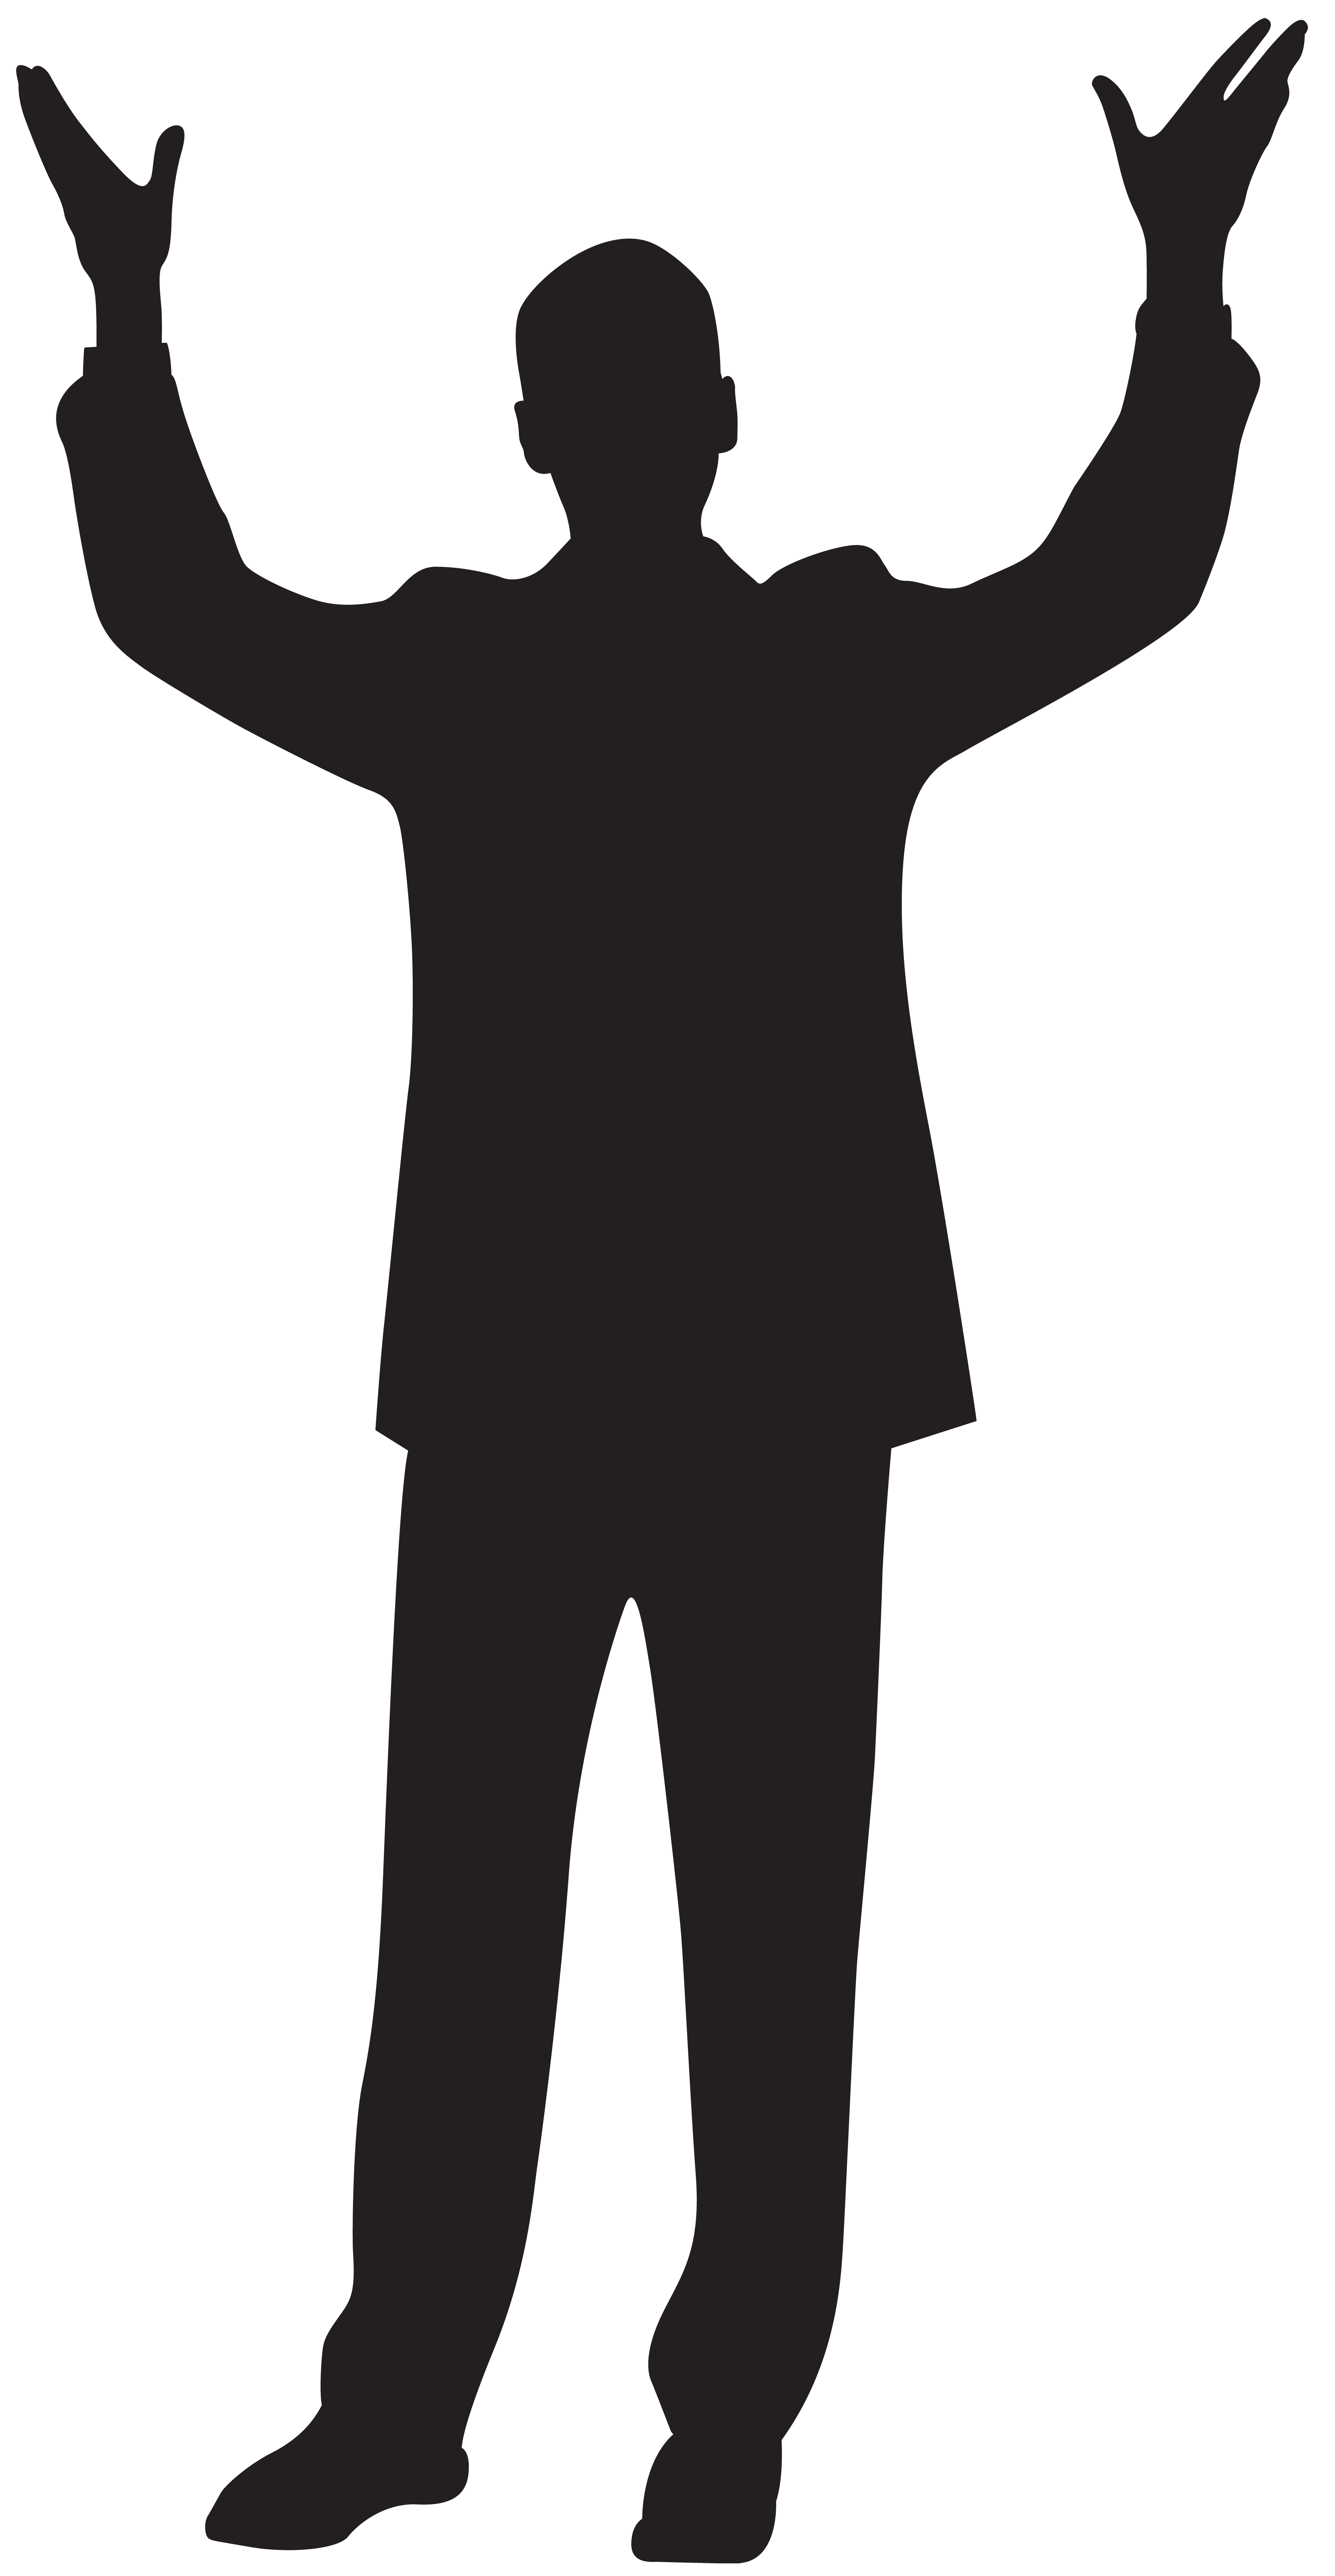 4147x8000 Man With Hands Up Silhouette Clip Art Imageu200b Gallery